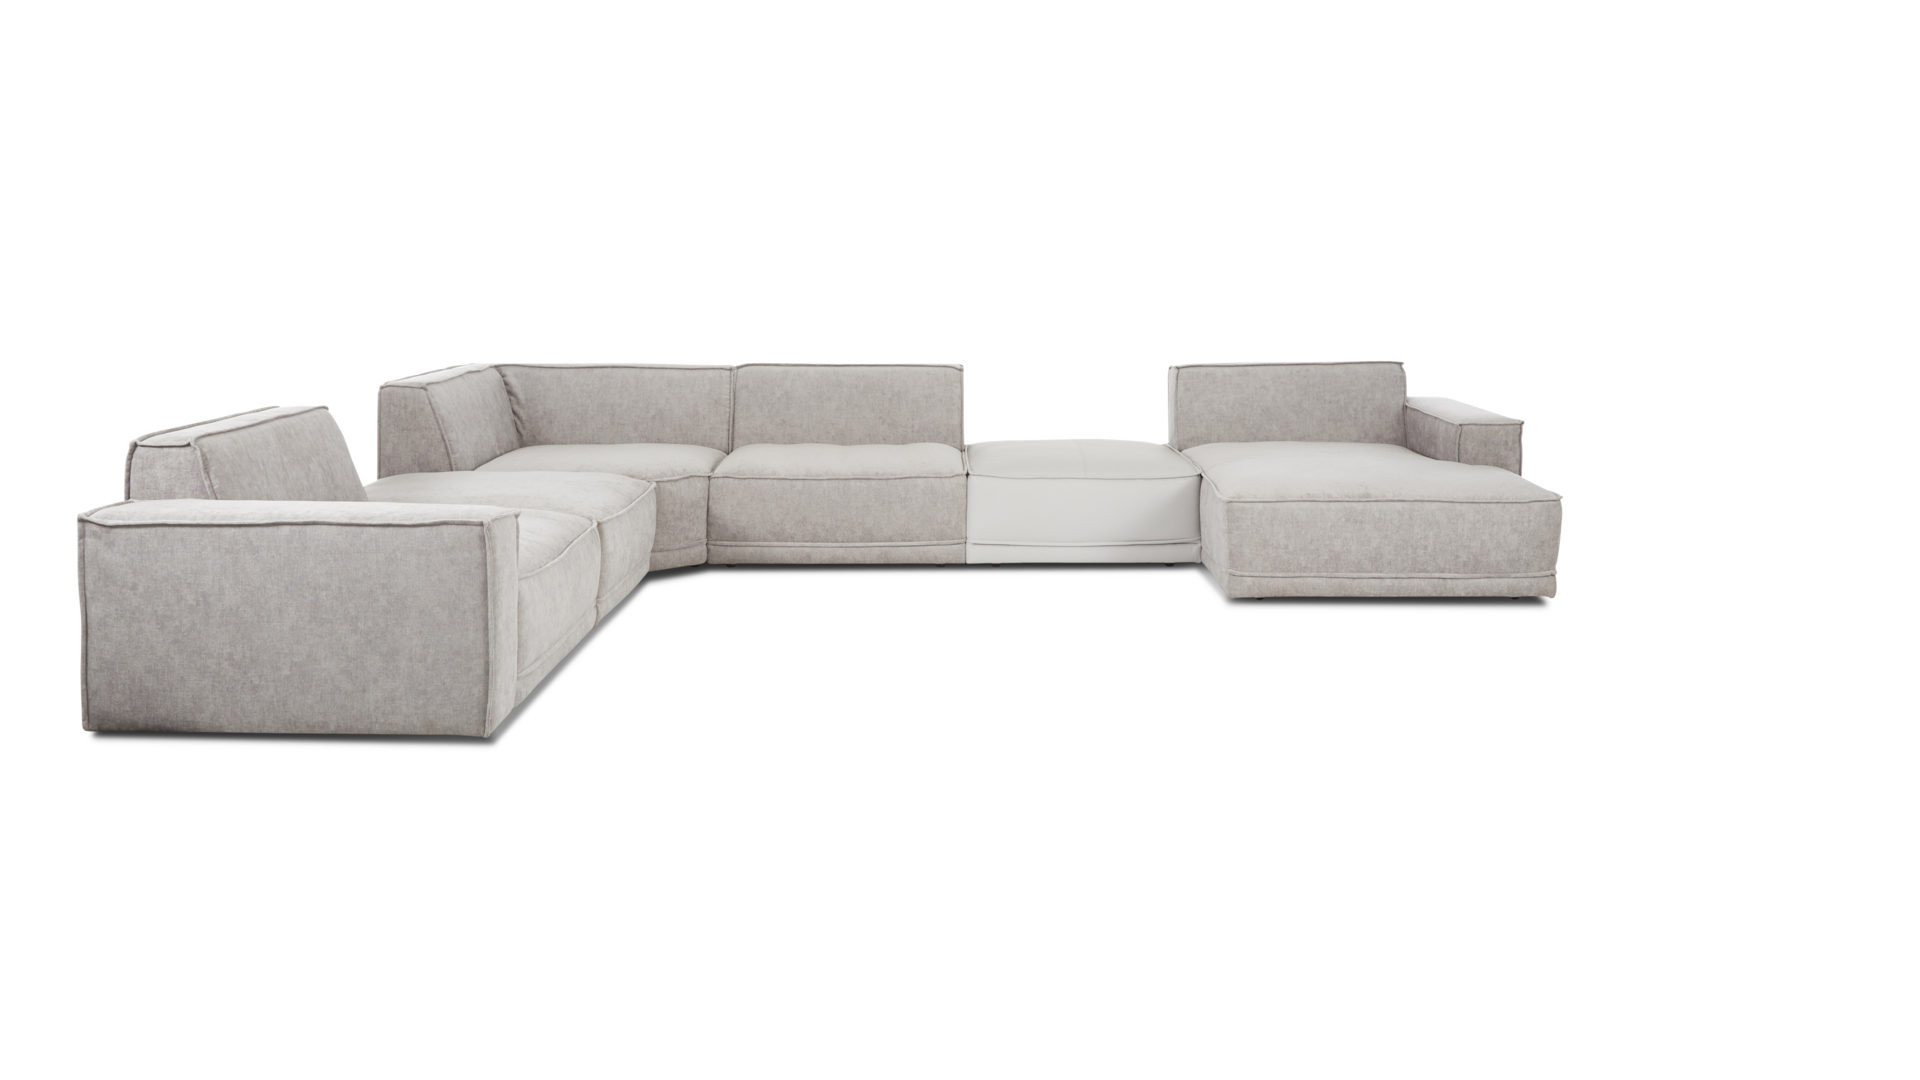 Candy Couchgarnitur Interliving Sofa Serie 4100 Wohnlandschaft Hellgrauer